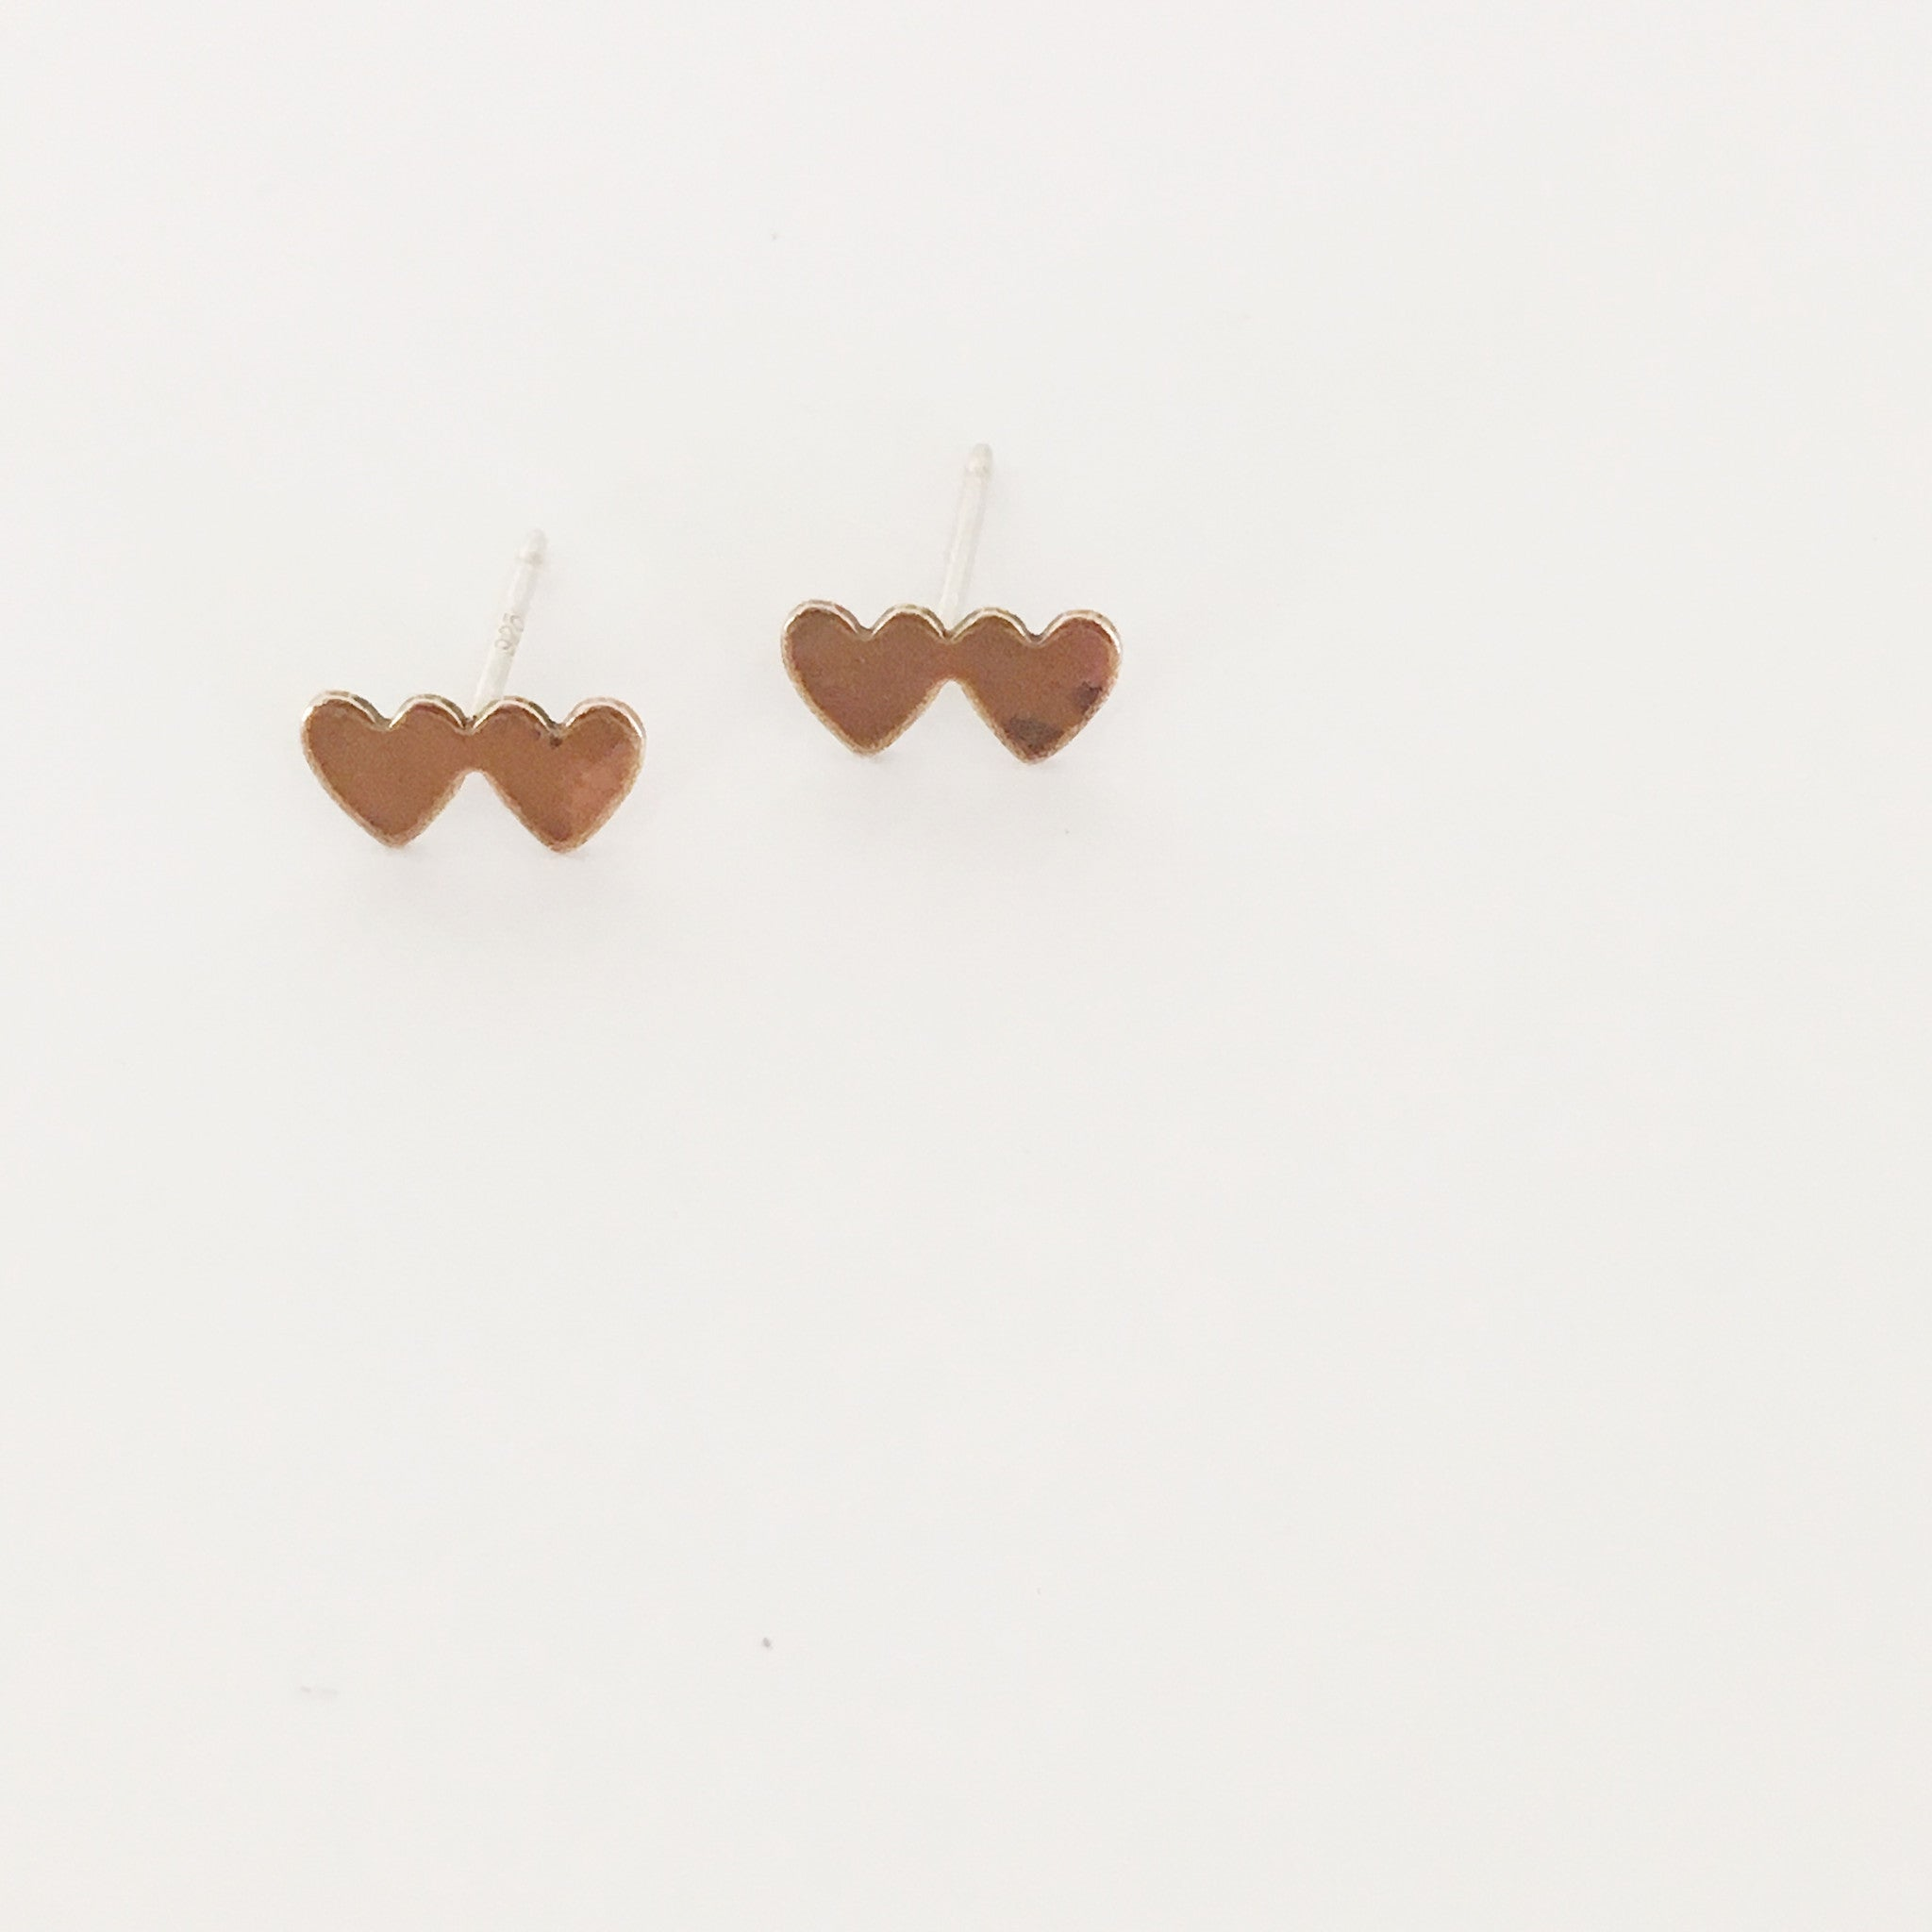 gold heart earring posts